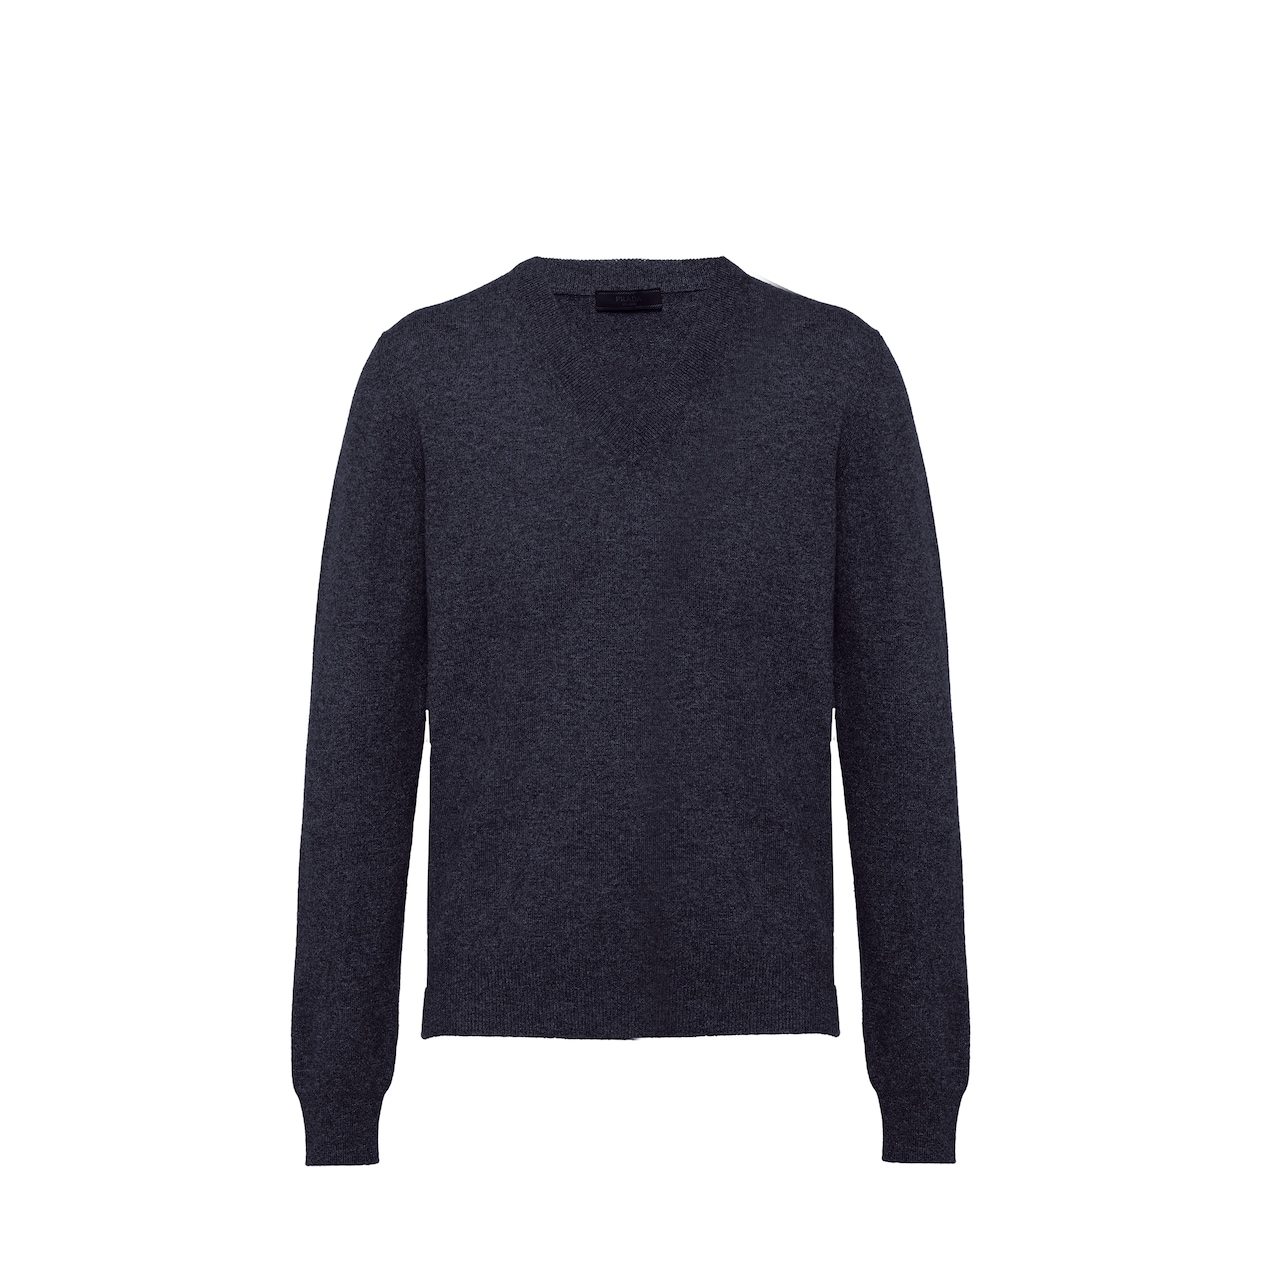 Prada Cashmere sweater 1